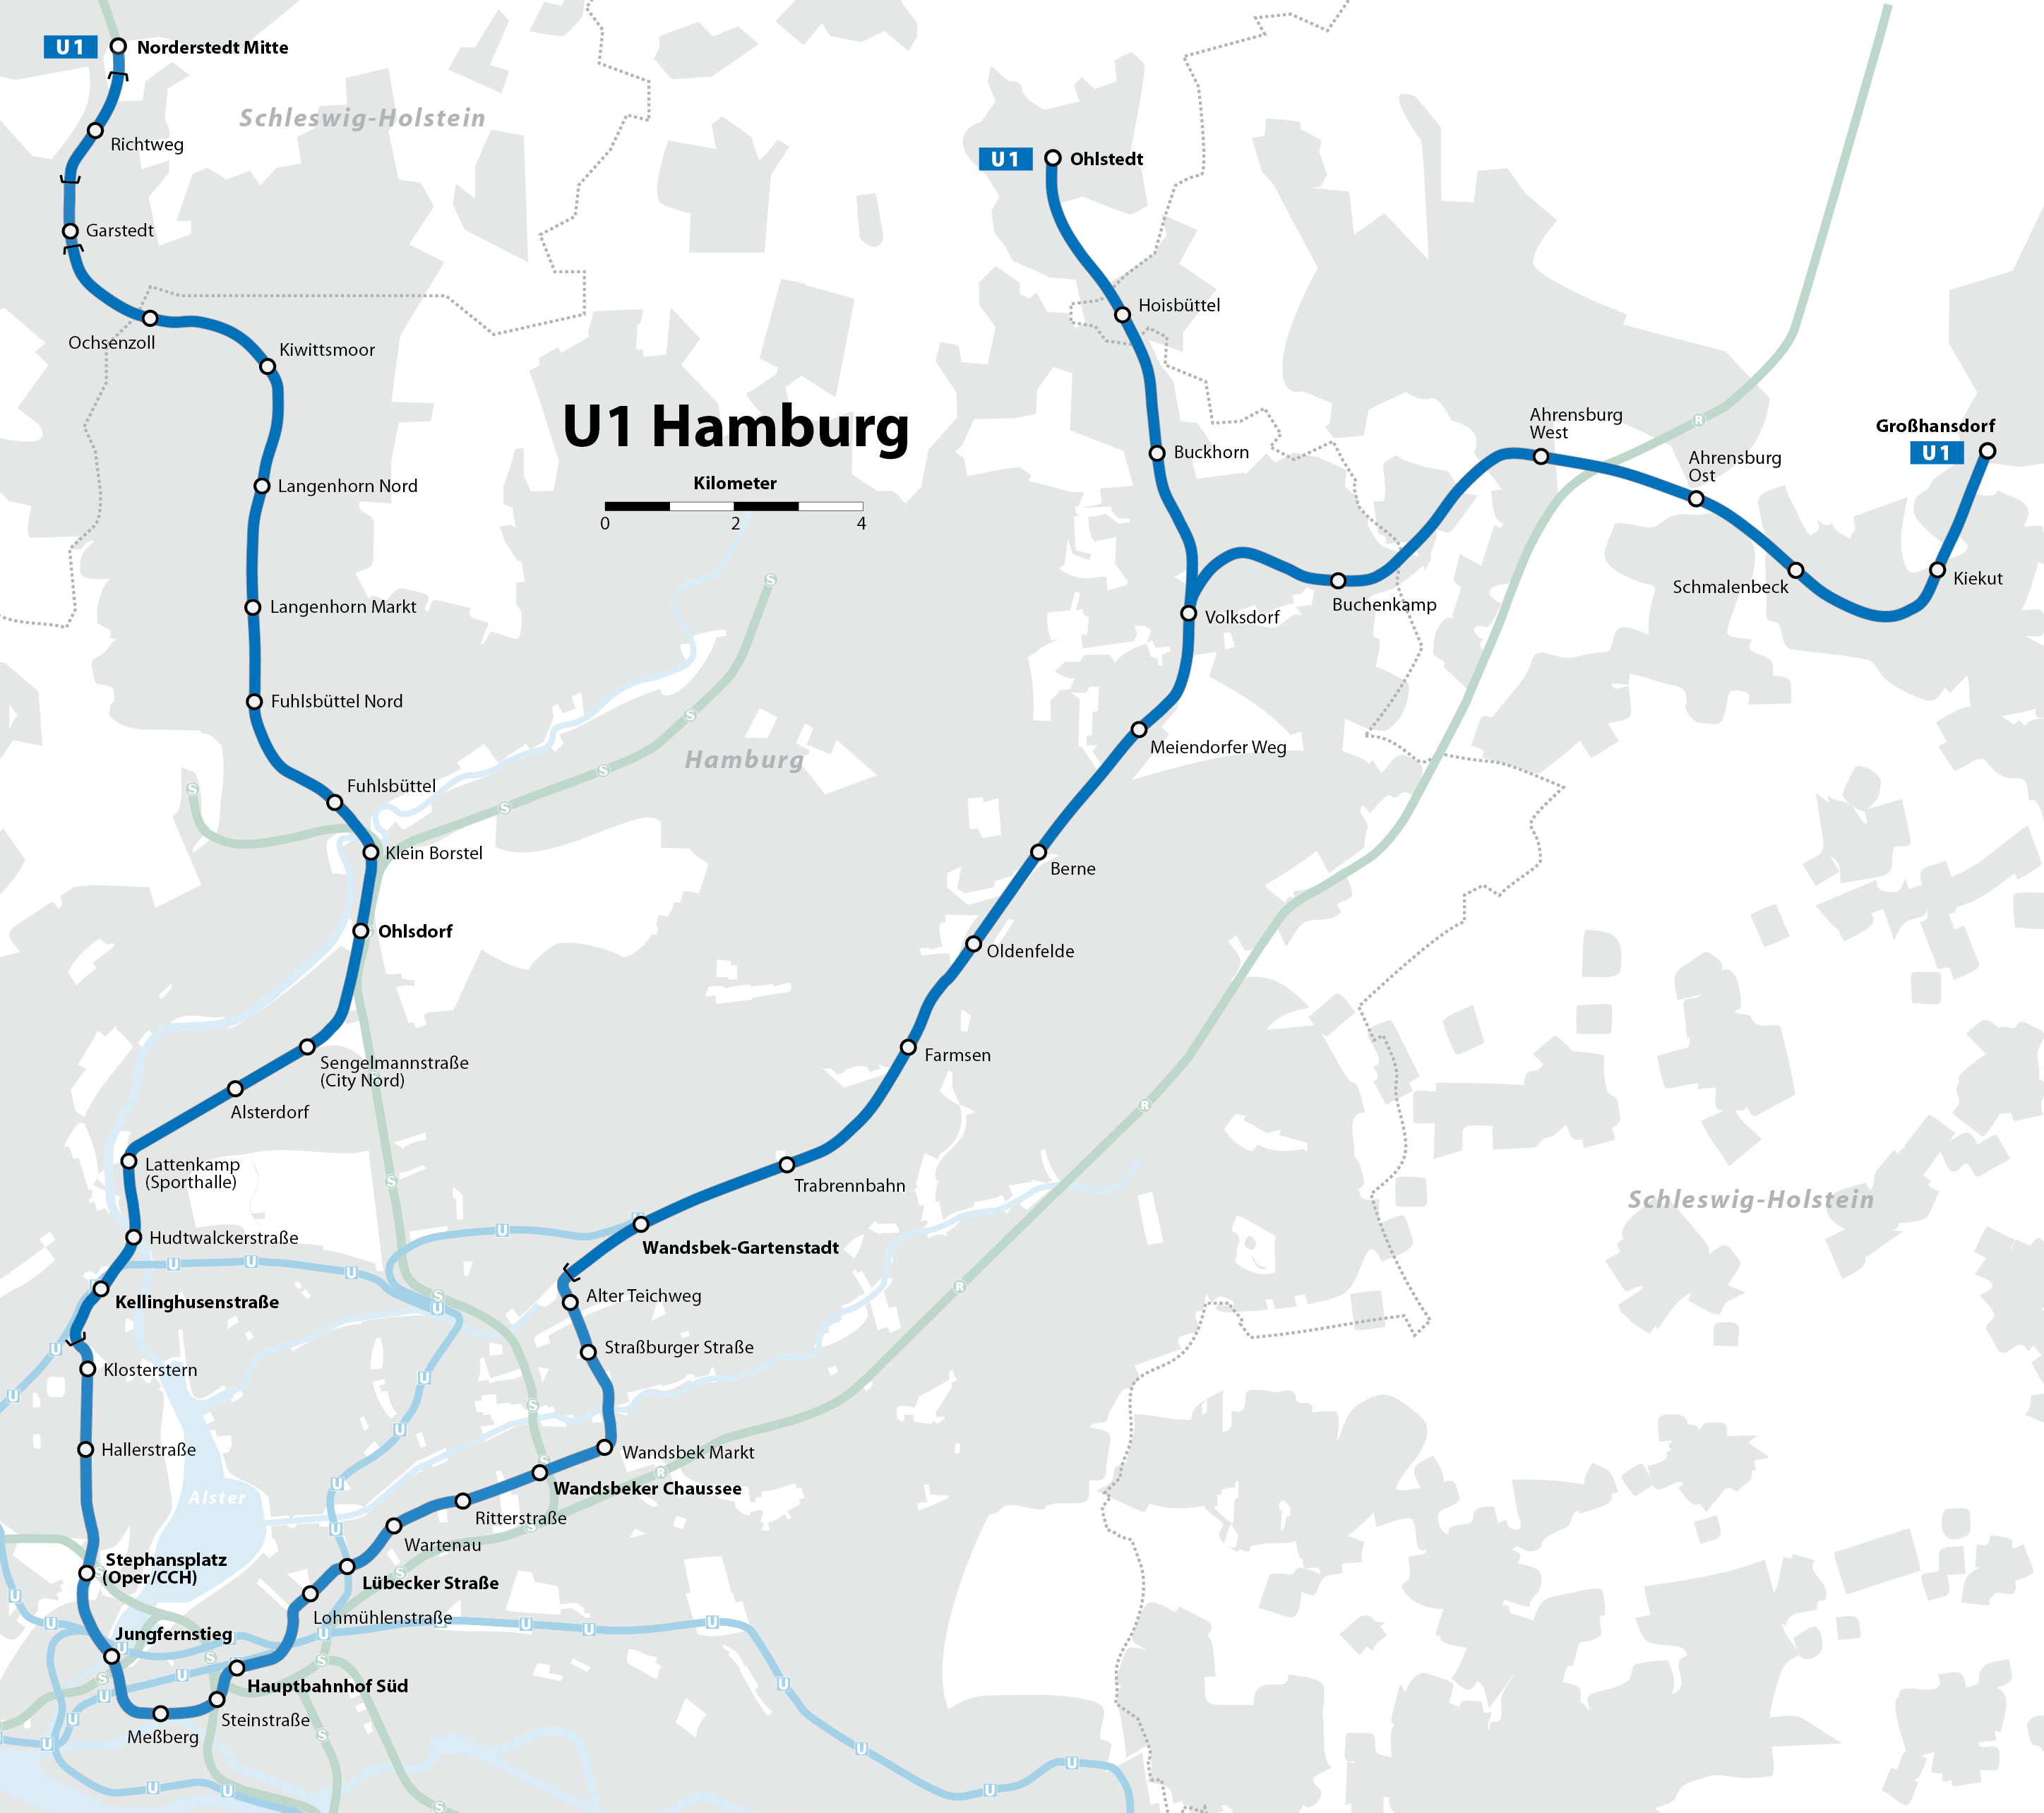 Hamburg Subway Map.U1 Hamburg U Bahn Wikipedia